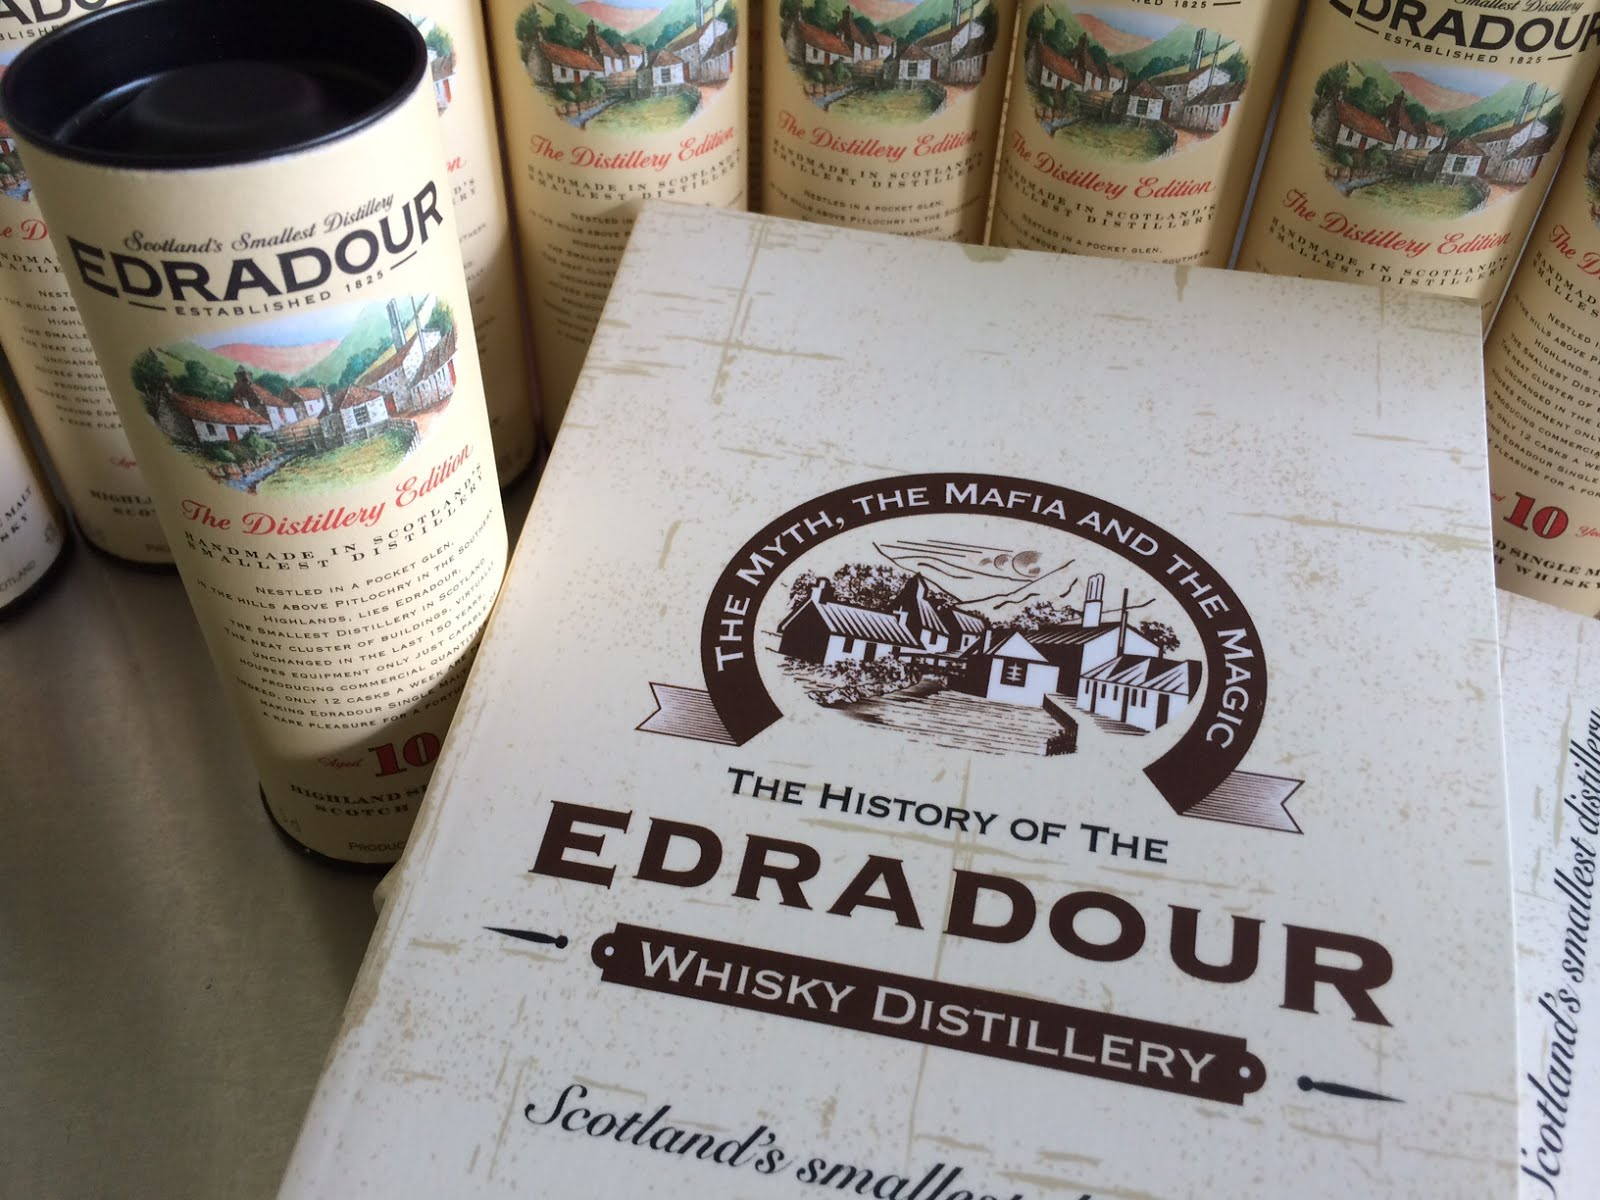 The history of Edradour Distillery